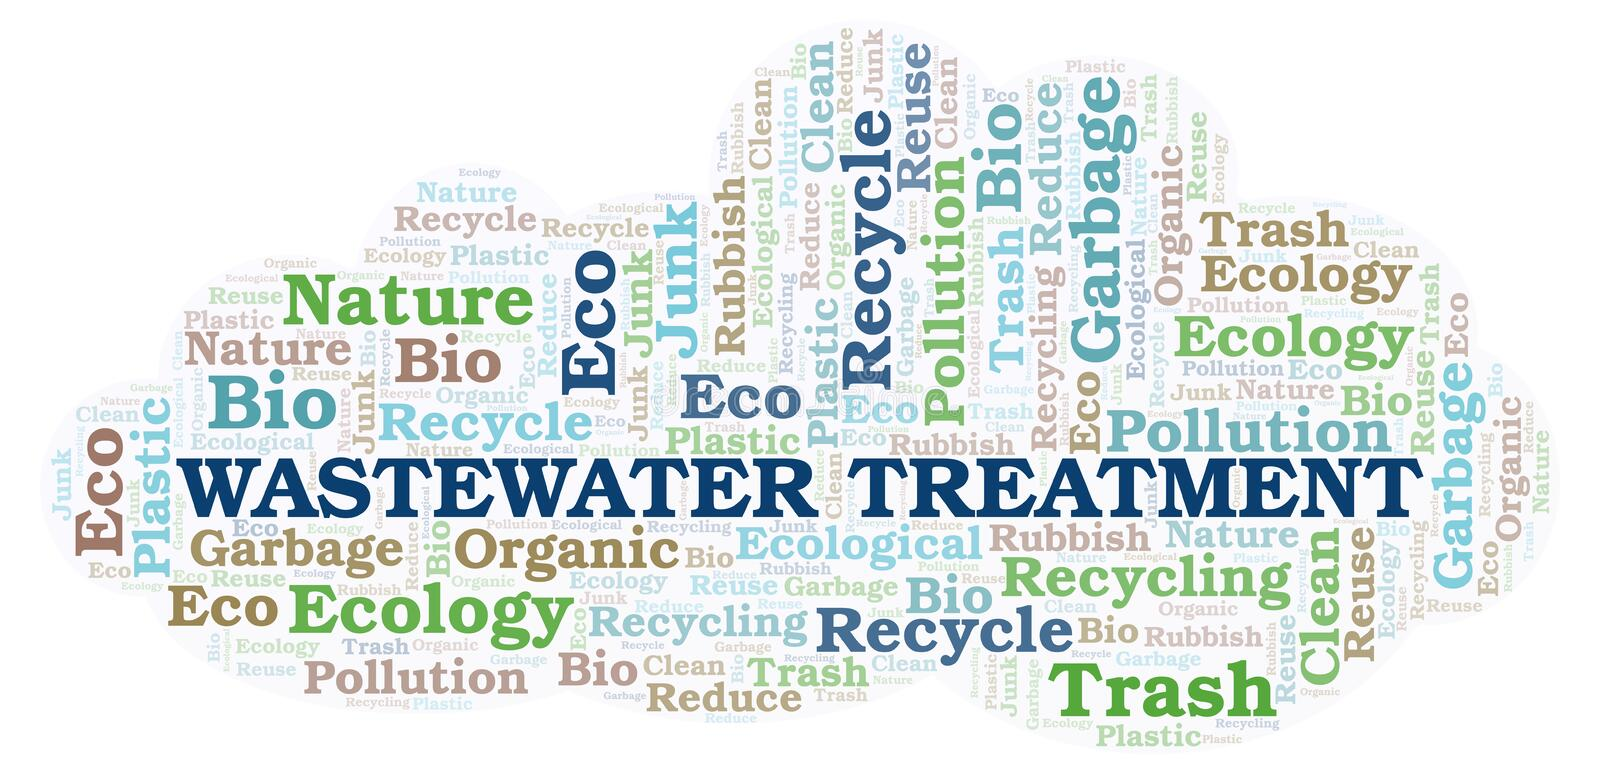 Wastewater Treatment word cloud vector illustration